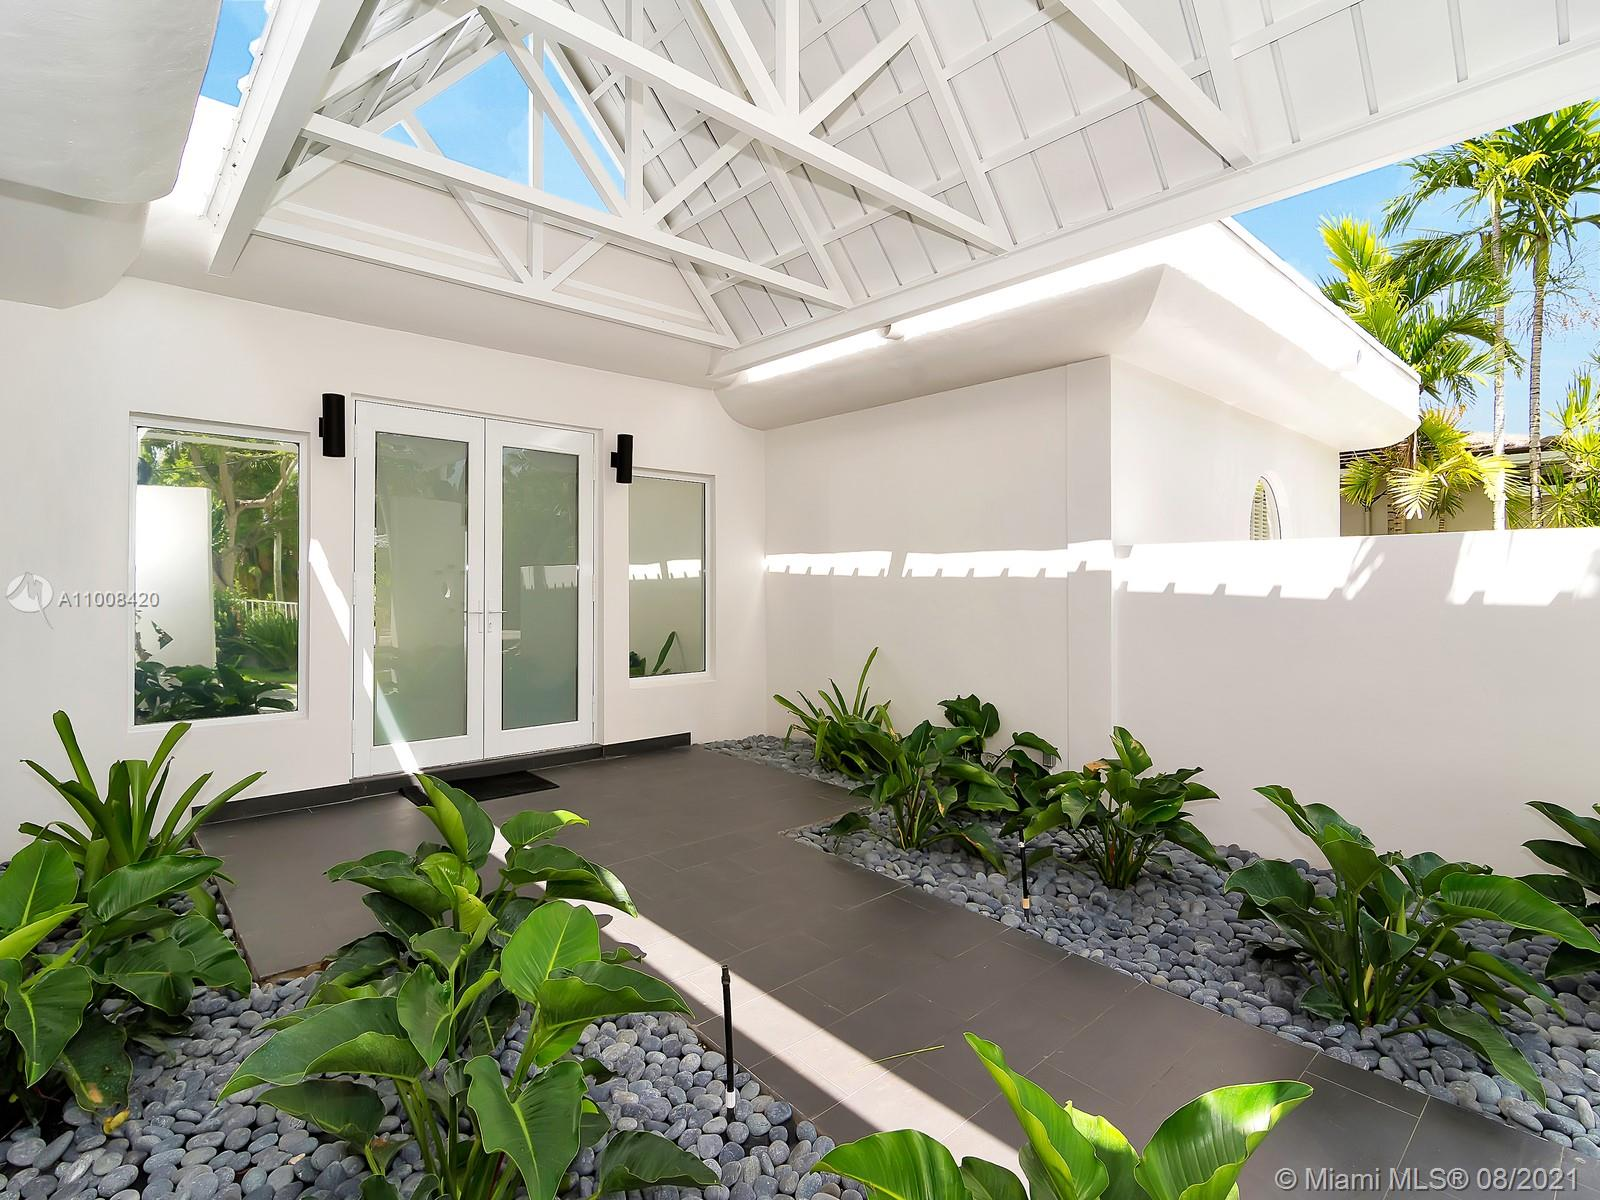 """""""ALL NEW""""! STUNNING COMPLETELY RENOVATED IN 2017 - CONTEMPORARY DESIGN - A REAL 5 BEDROOM, 4.5 BATH+DEN (2,800 SQF """"LIVING AREA"""") ** RENOVATION (ALL WITH PERMITS) INCLUDES NEW HURRICANE PROOF WINDOWS AND DOORS, NEW MECHANICAL SYSTEMS (PLUMBING, ELECTRIC, 3 NEW AC UNITS), AMAZING MODERN ITALIAN KITCHEN WITH QUARTS COUNTERTOP AND HIGH END APPLIANCES ** THIS WATERFRONT PROPERTY ALSO FEATURES RENOVATED MOSAIC POOL, DECK, NEW LANDSCAPING WITH AUTOMATED SPRINKLE SYSTEM AND MORE **"""